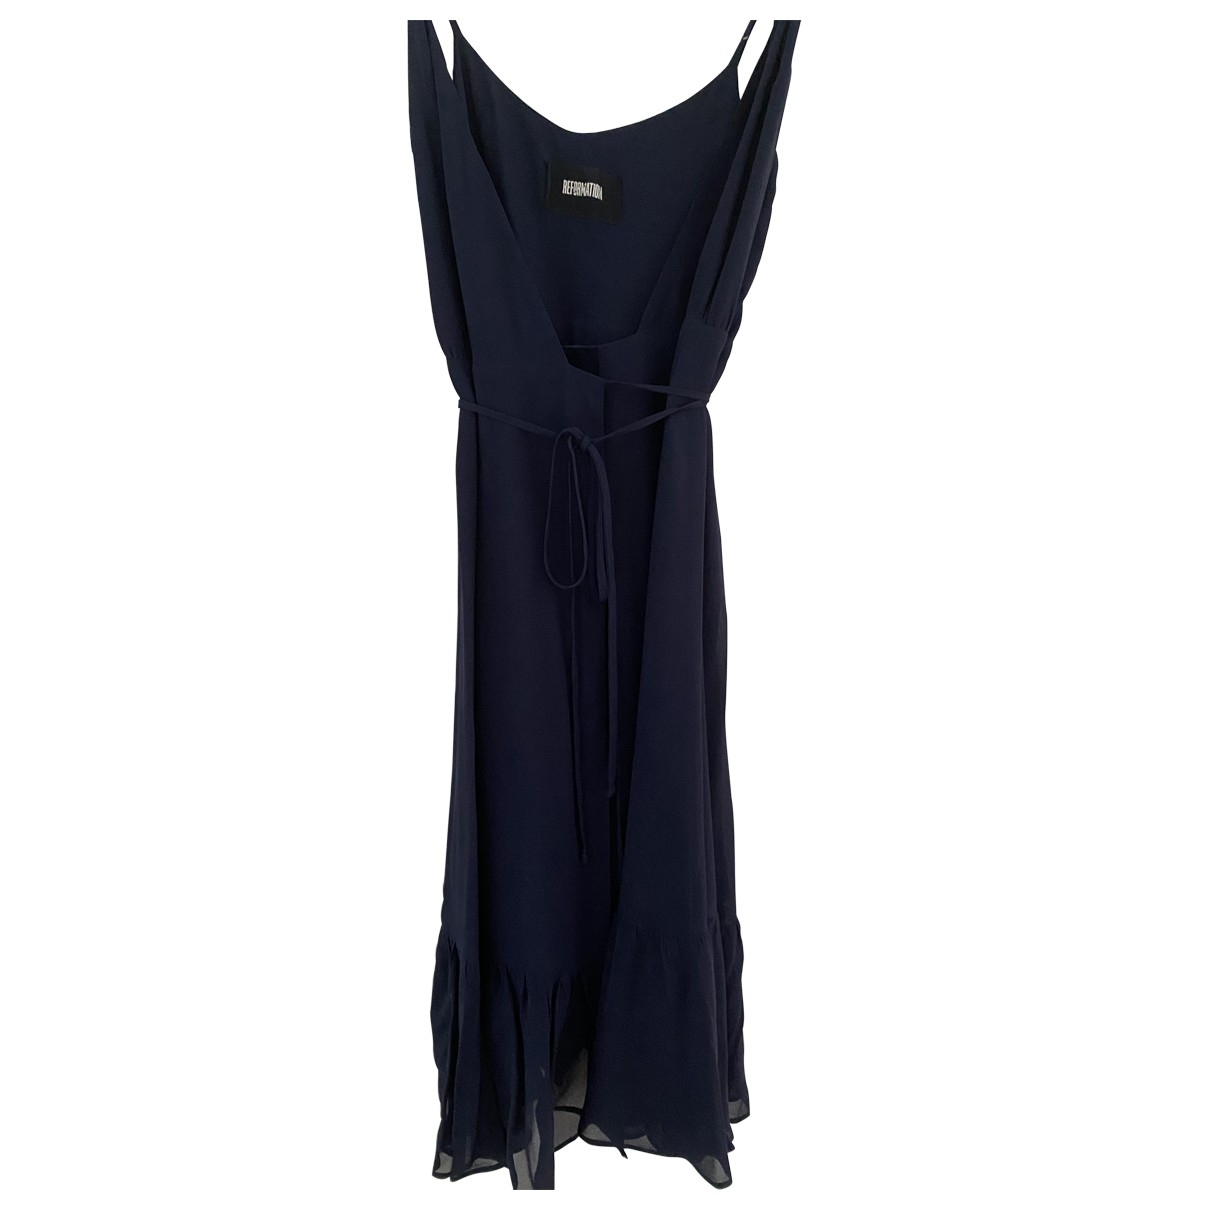 Reformation \N Navy dress for Women S International